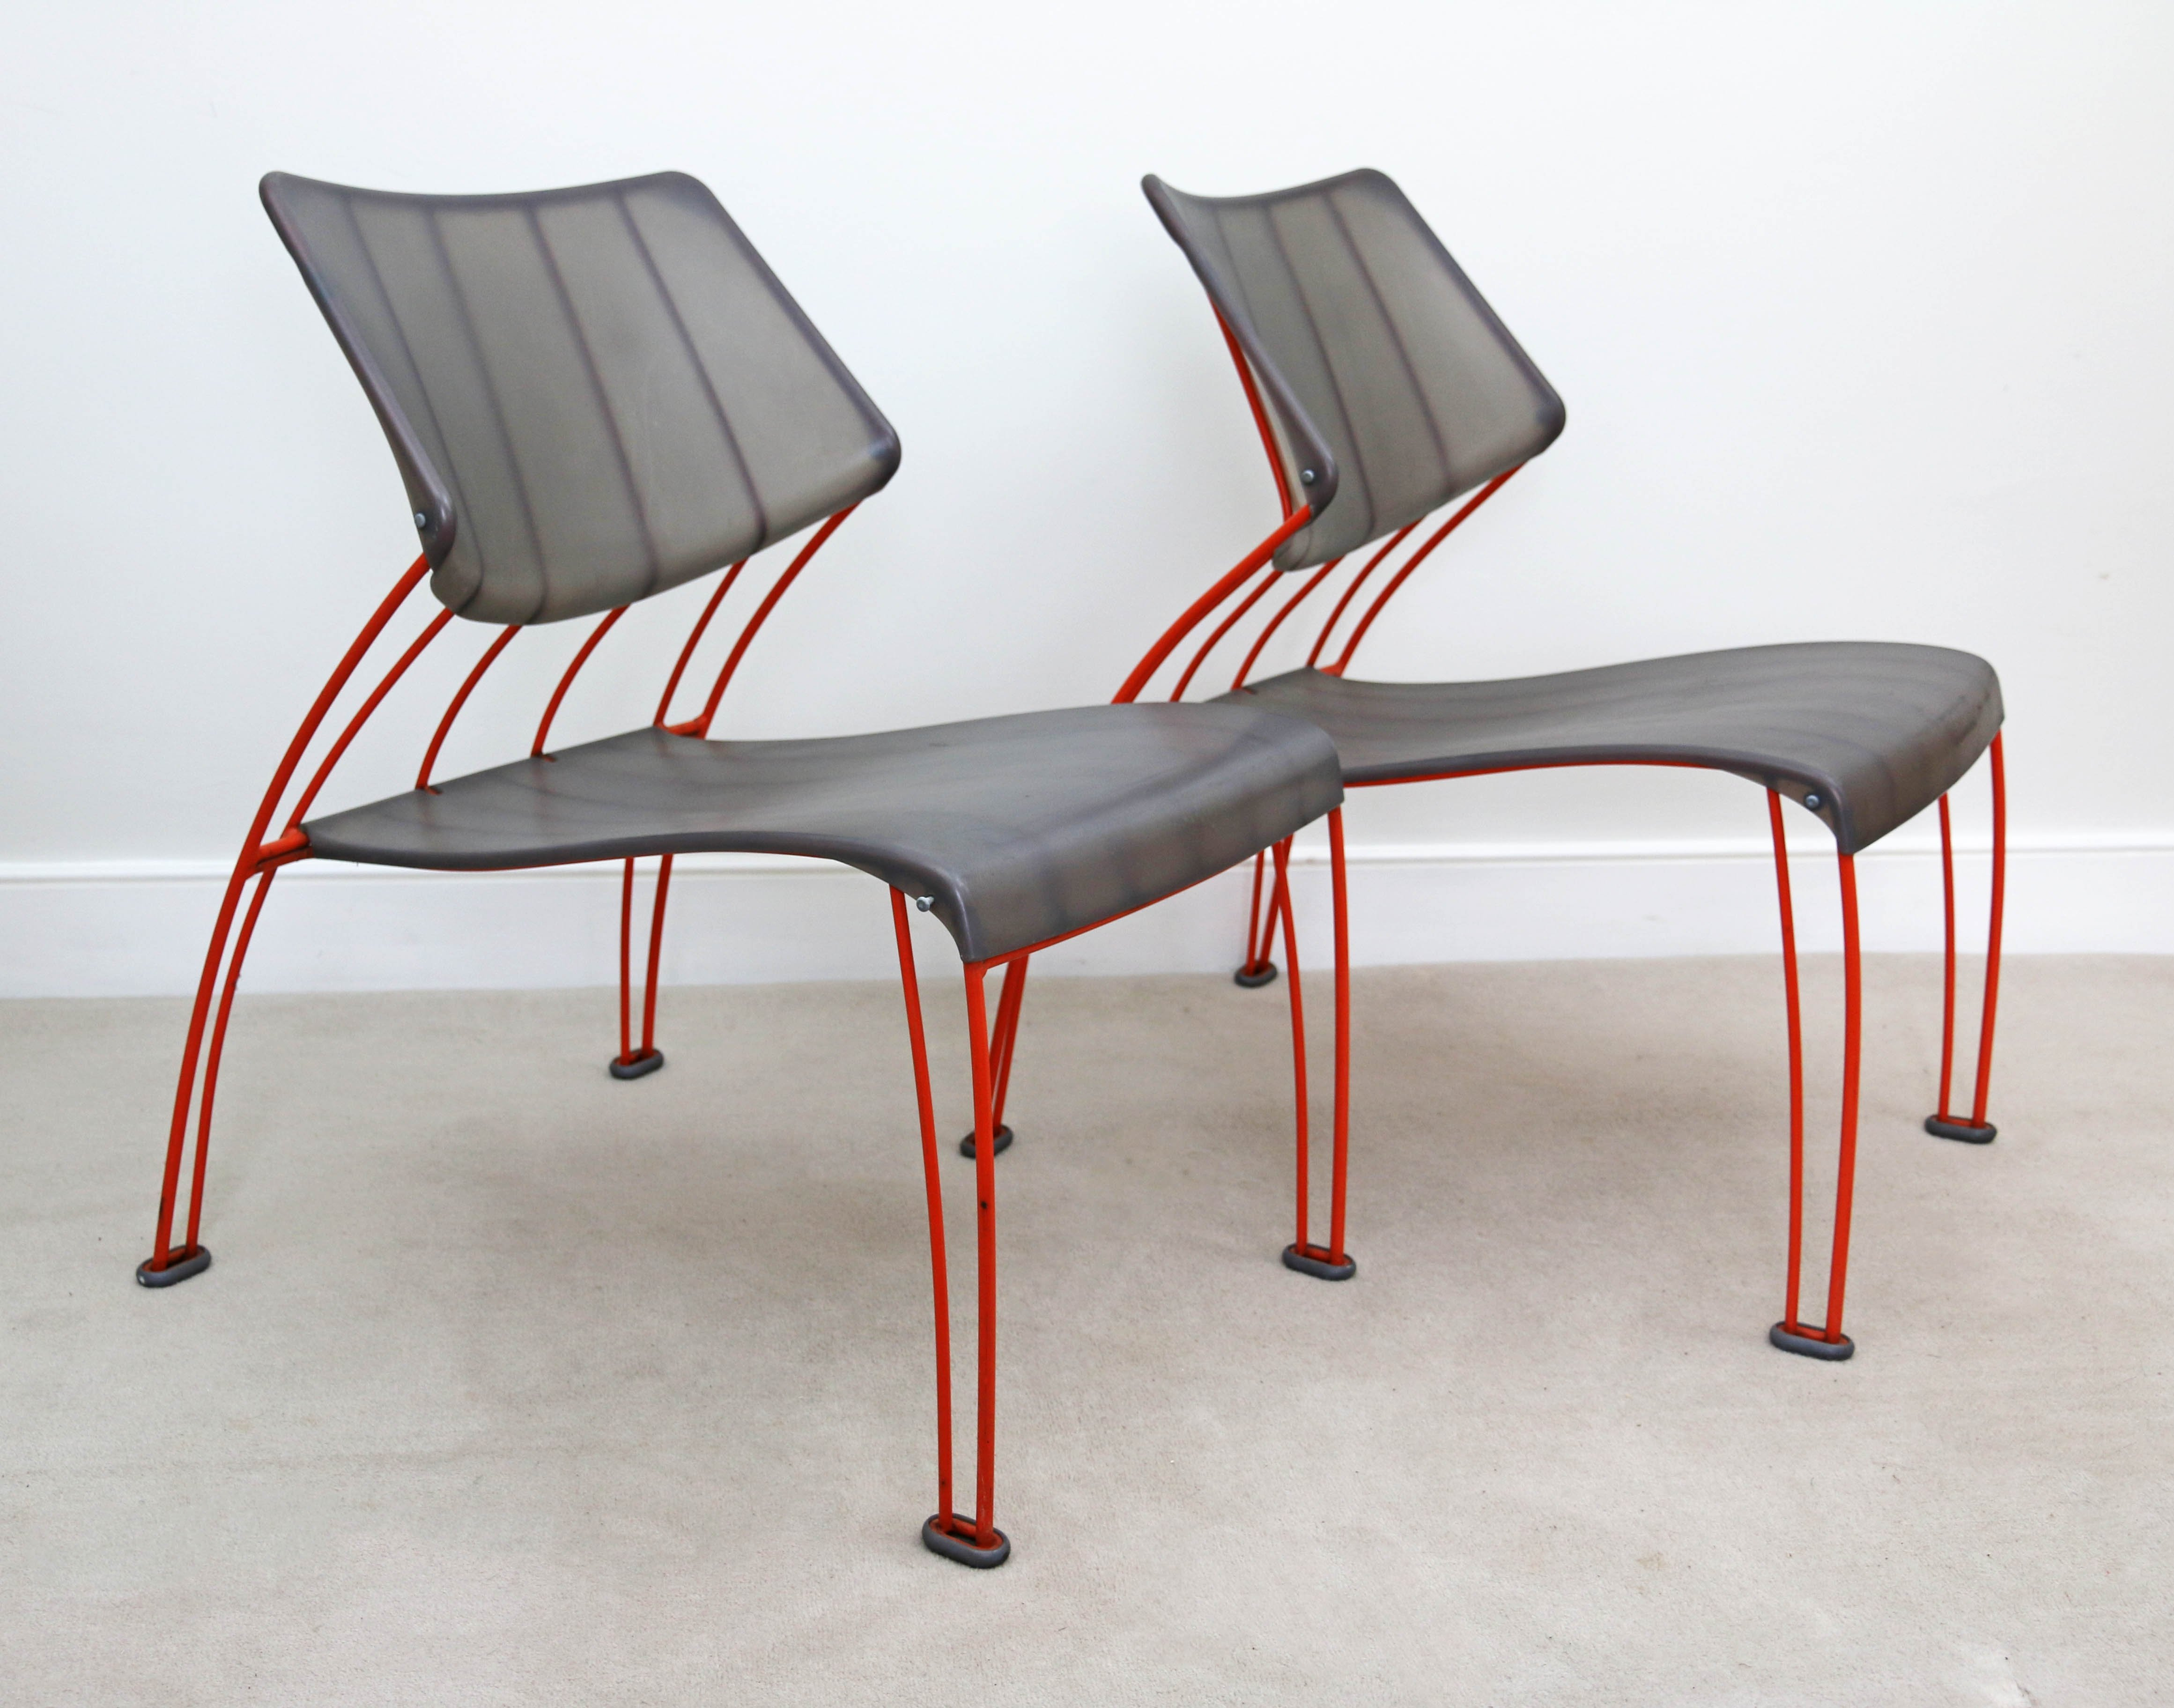 Ps Hlo Chairs By Monika Mulder